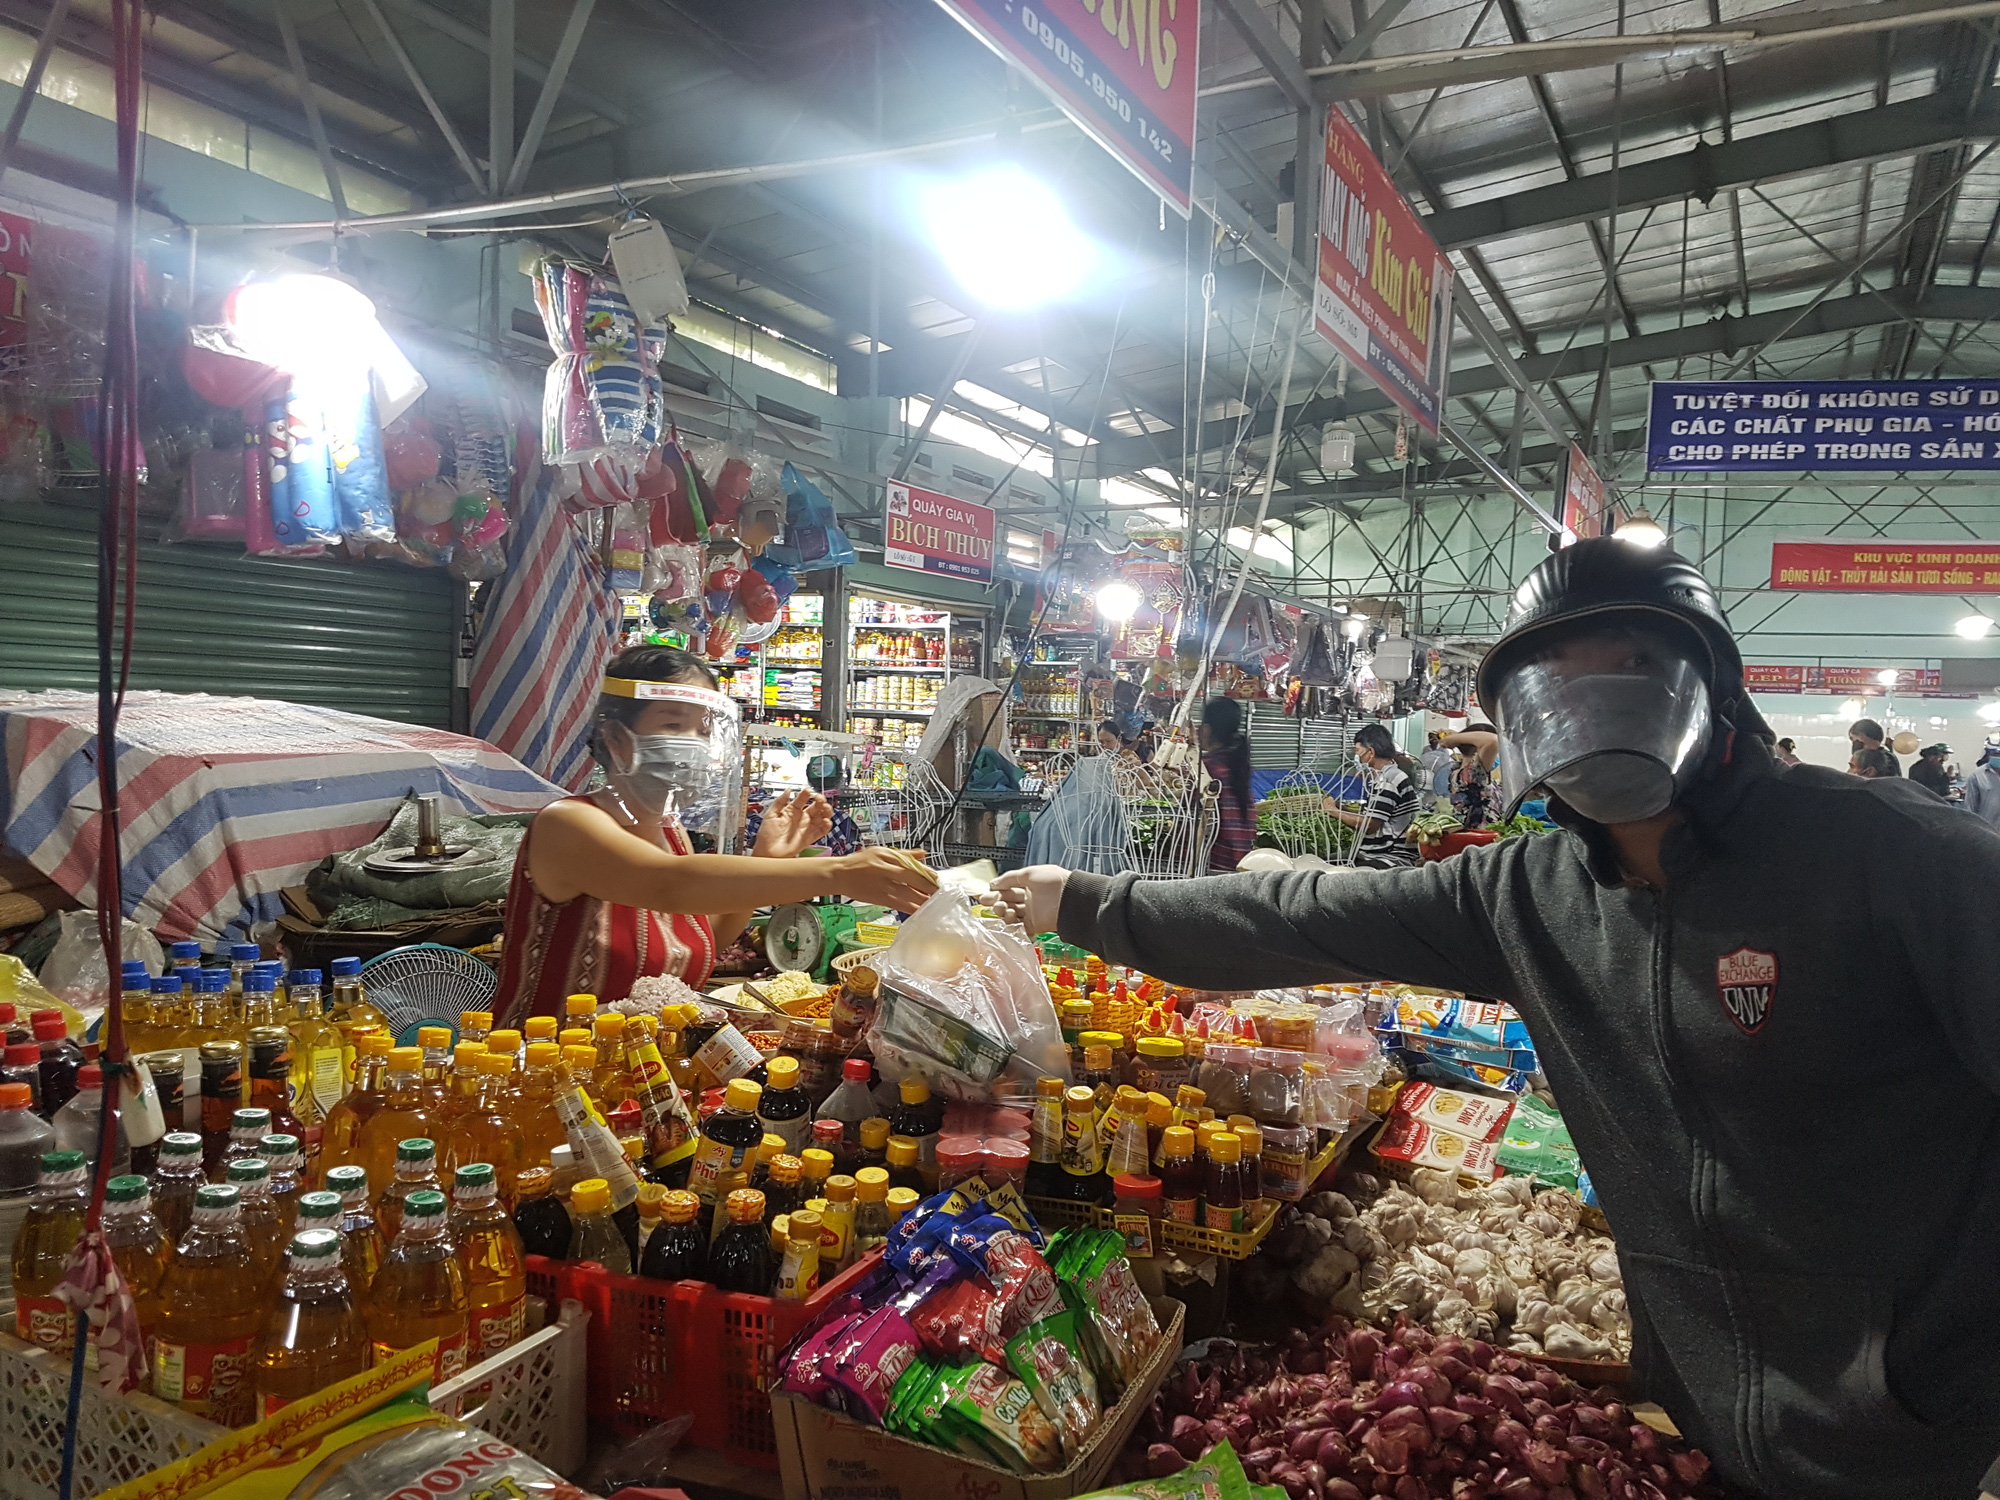 A merchant and buyer wear face masks and plastic shields at a market in Da Nang City, Vietnam, August 12, 2020. Photo: Huu Kha / Tuoi Tre